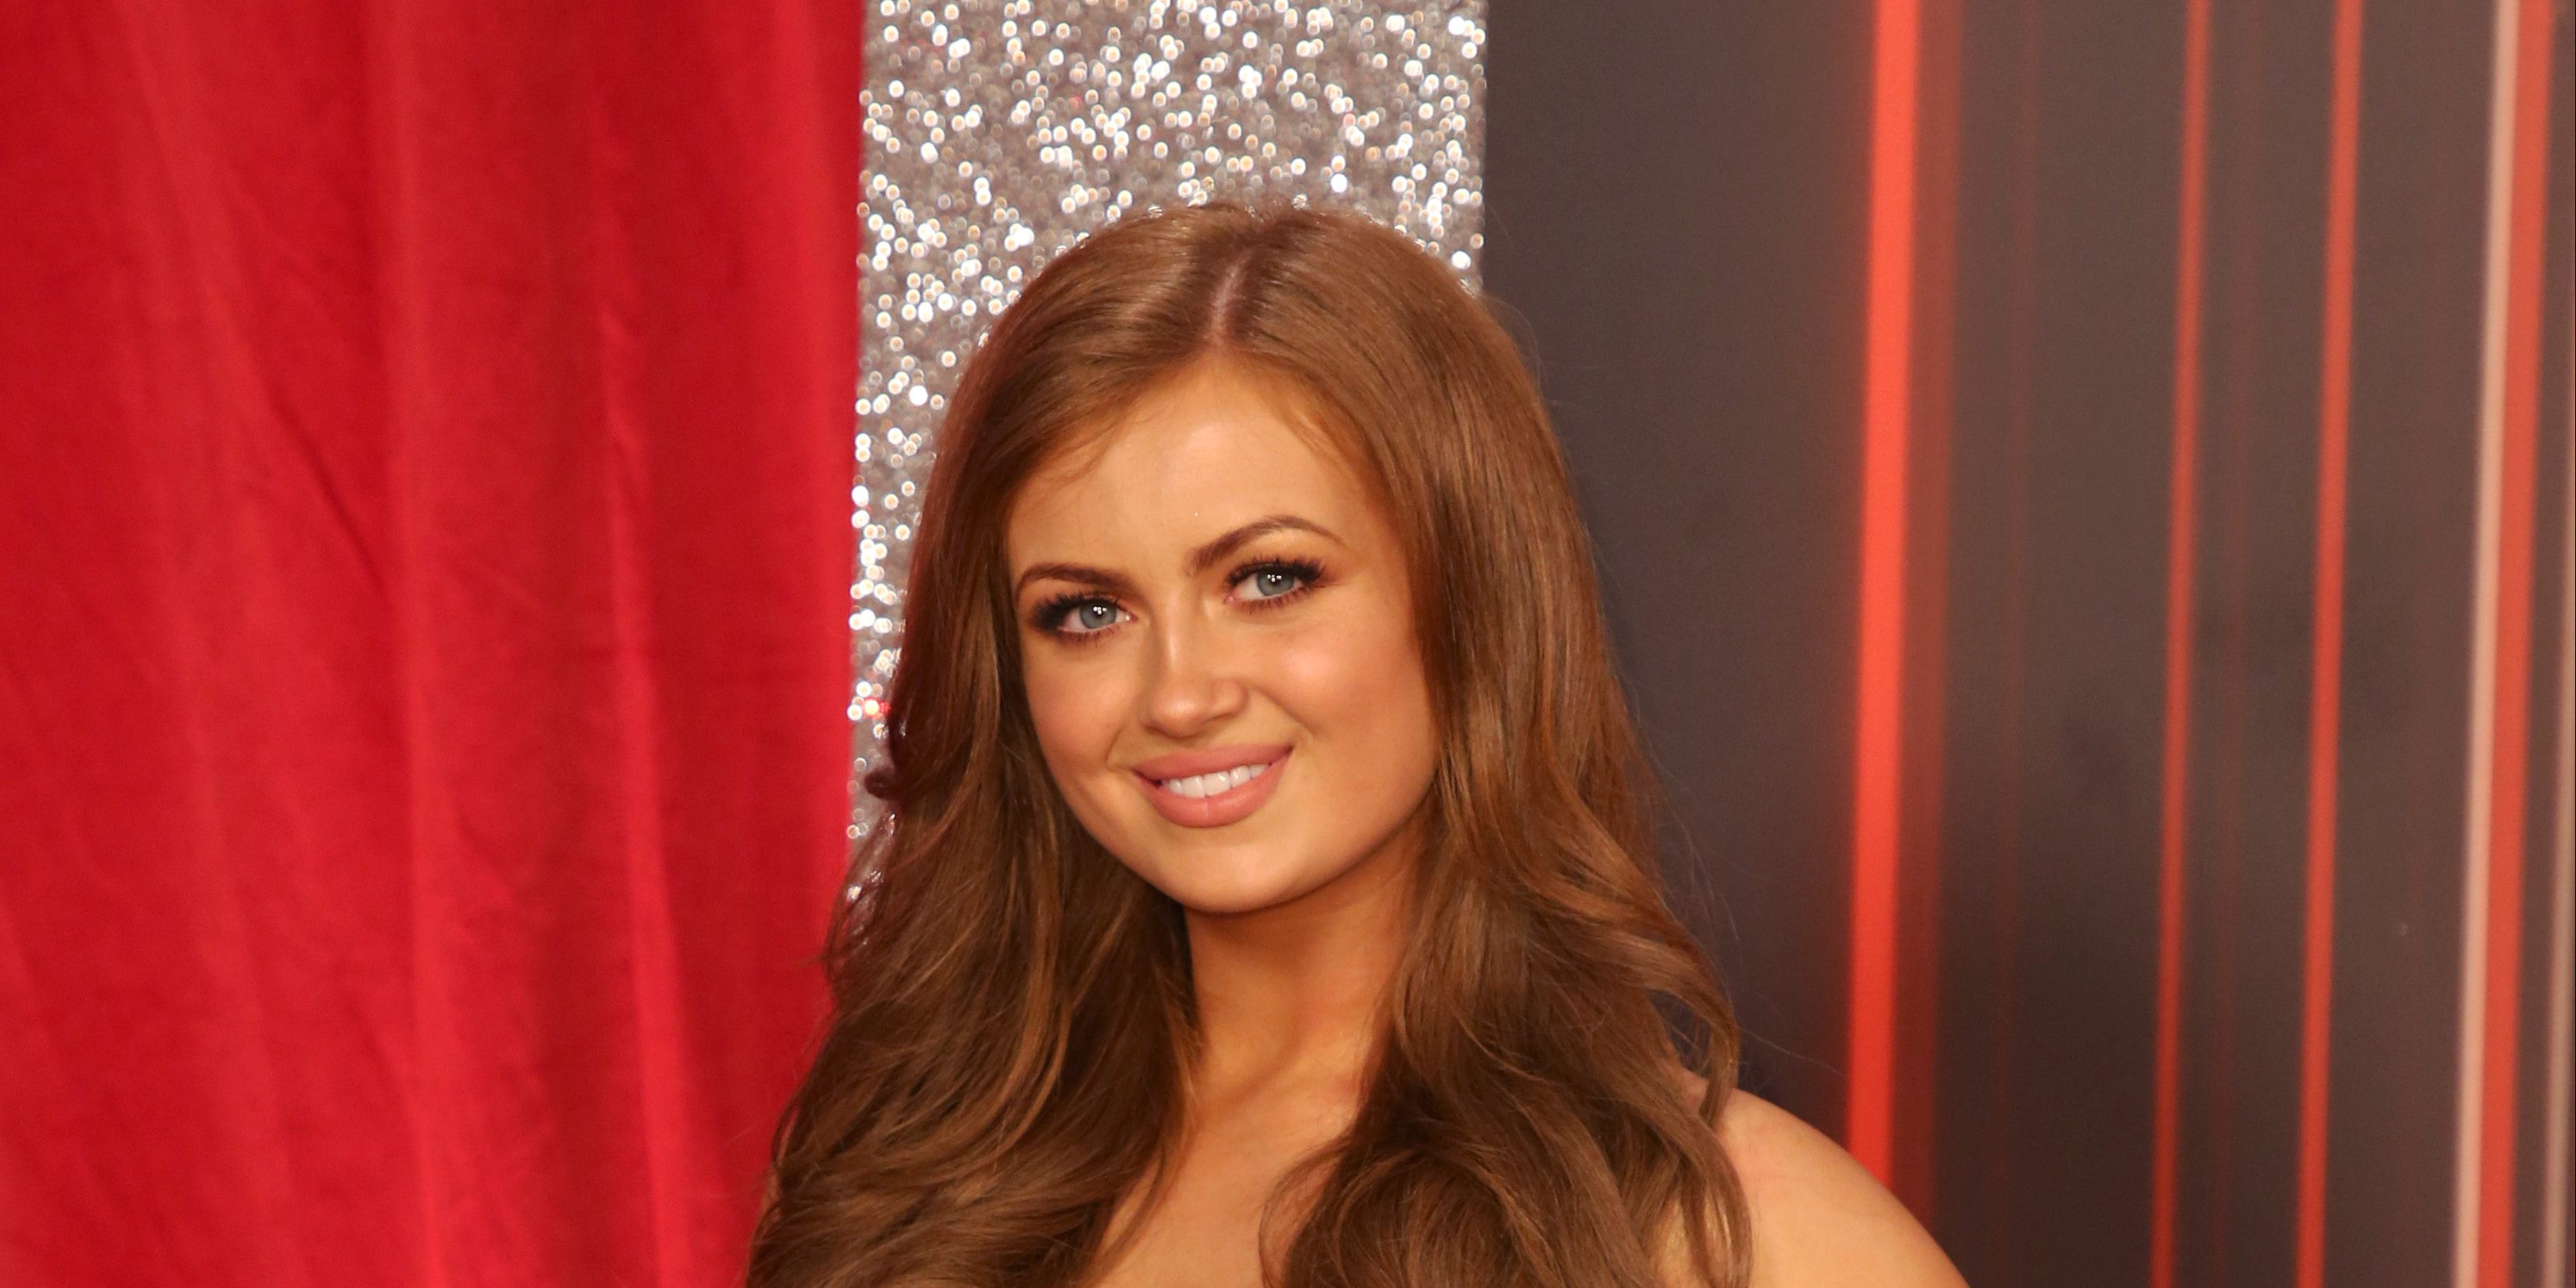 EastEnders' Maisie Smith shares photo with 'lookalike' mum